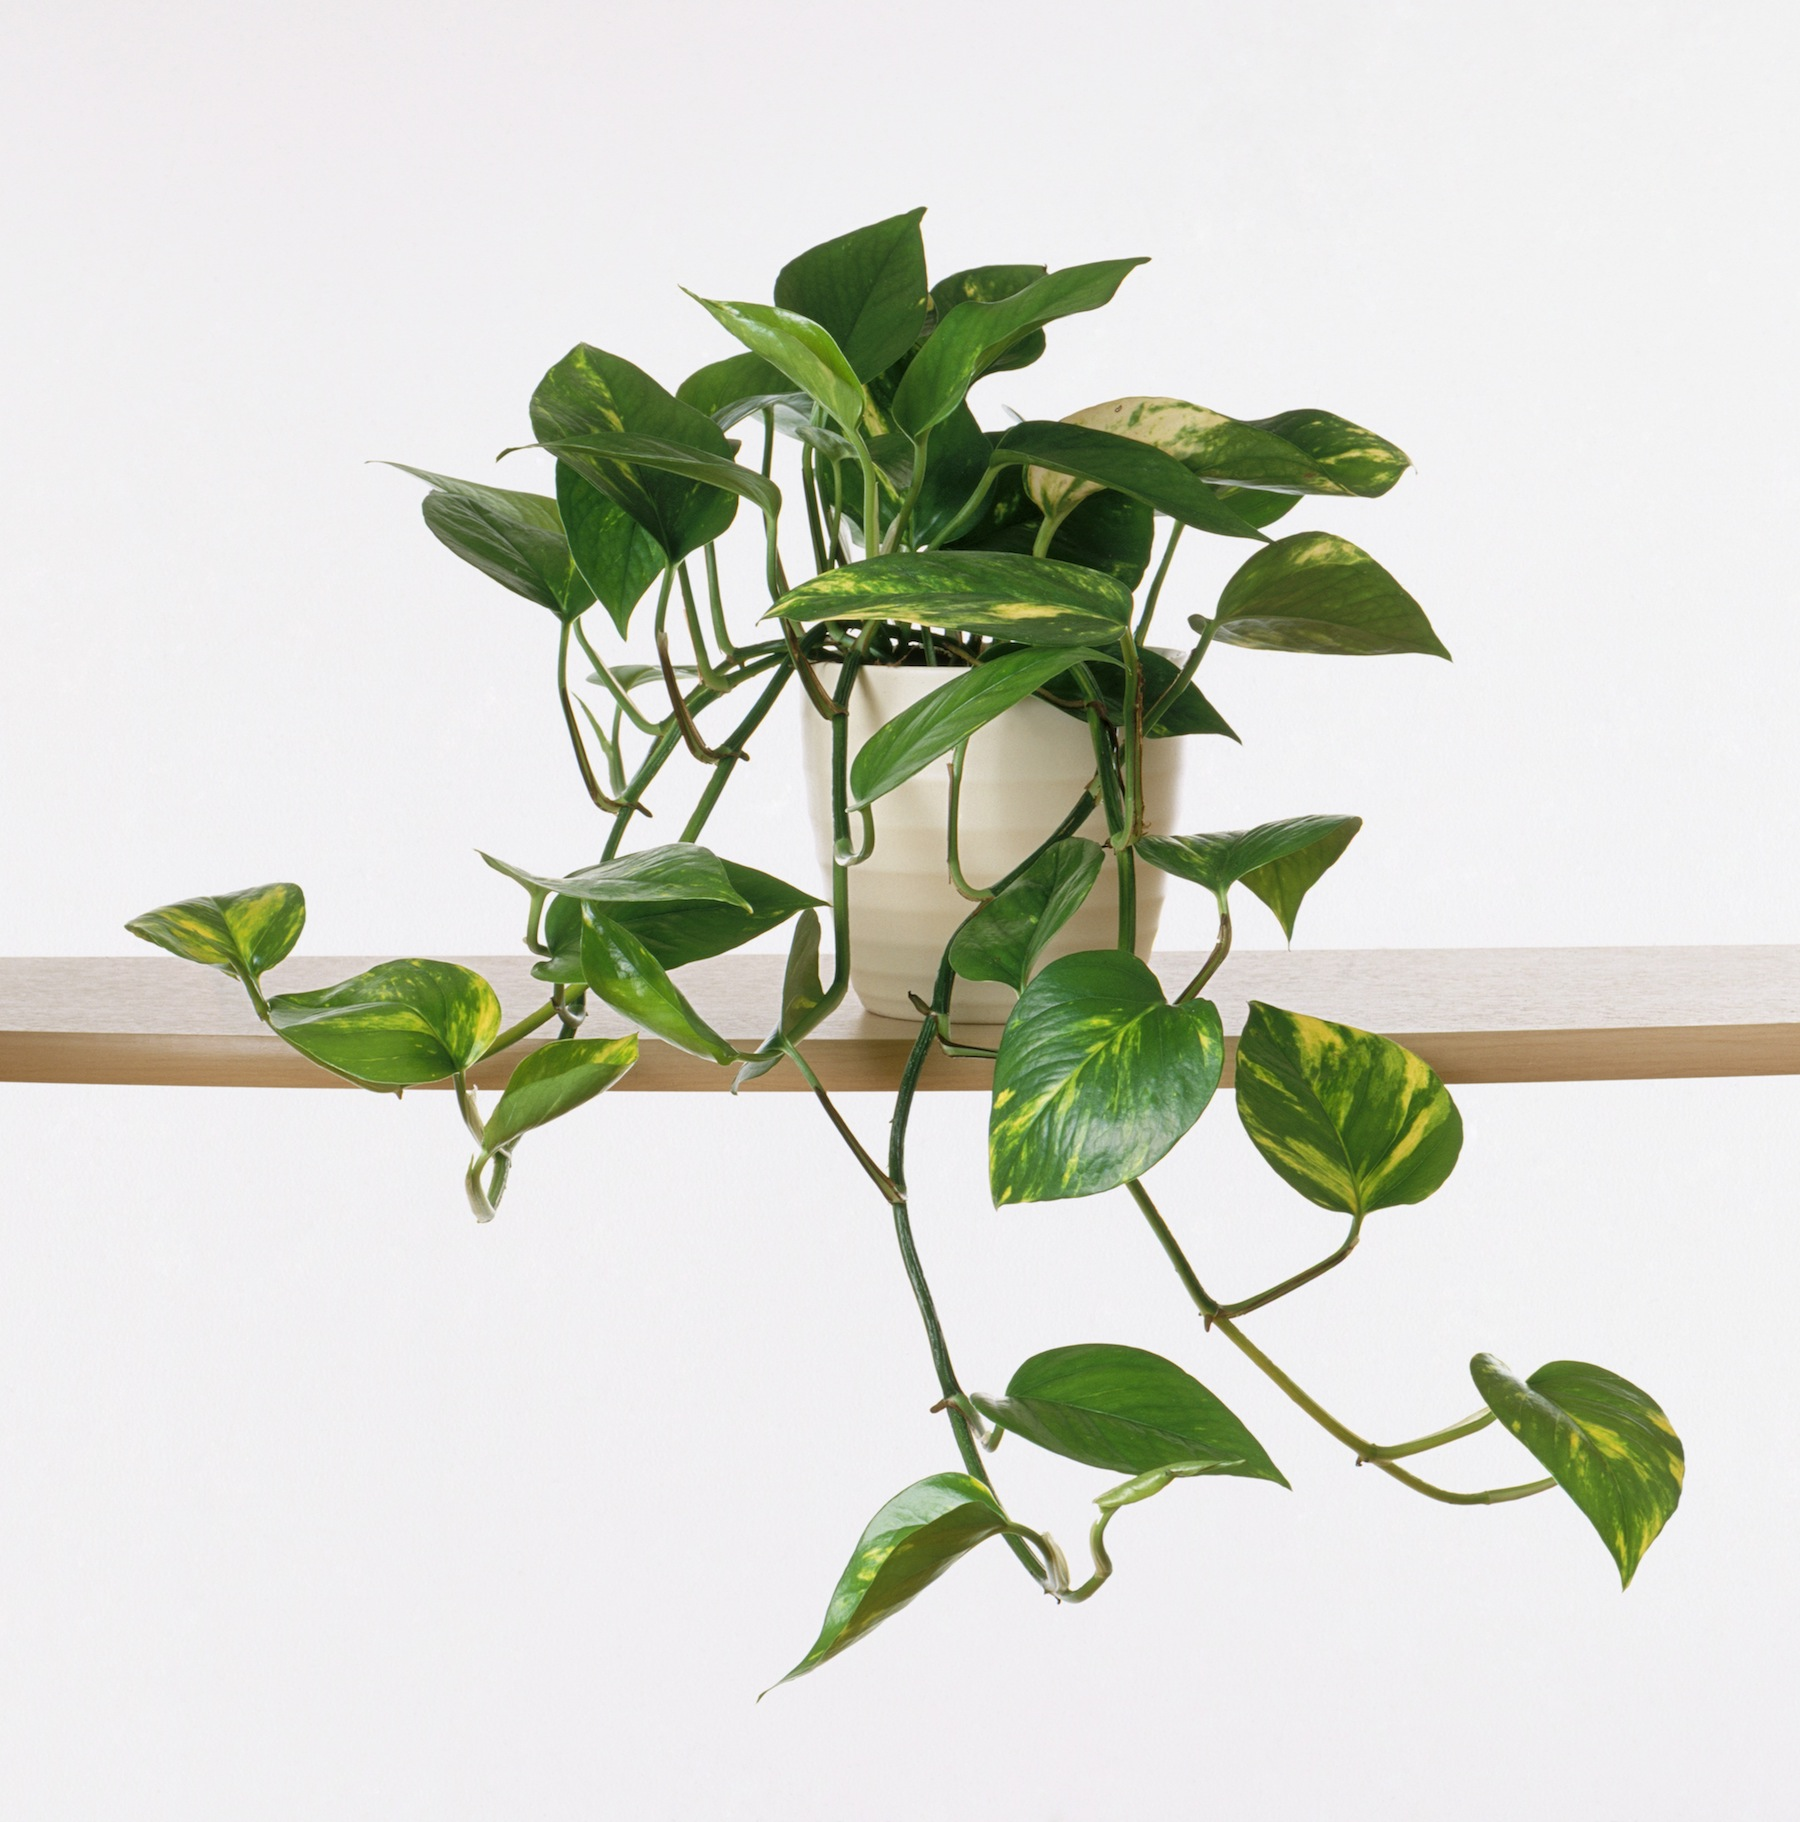 Plants That Don't Need Sunlight, Pothos